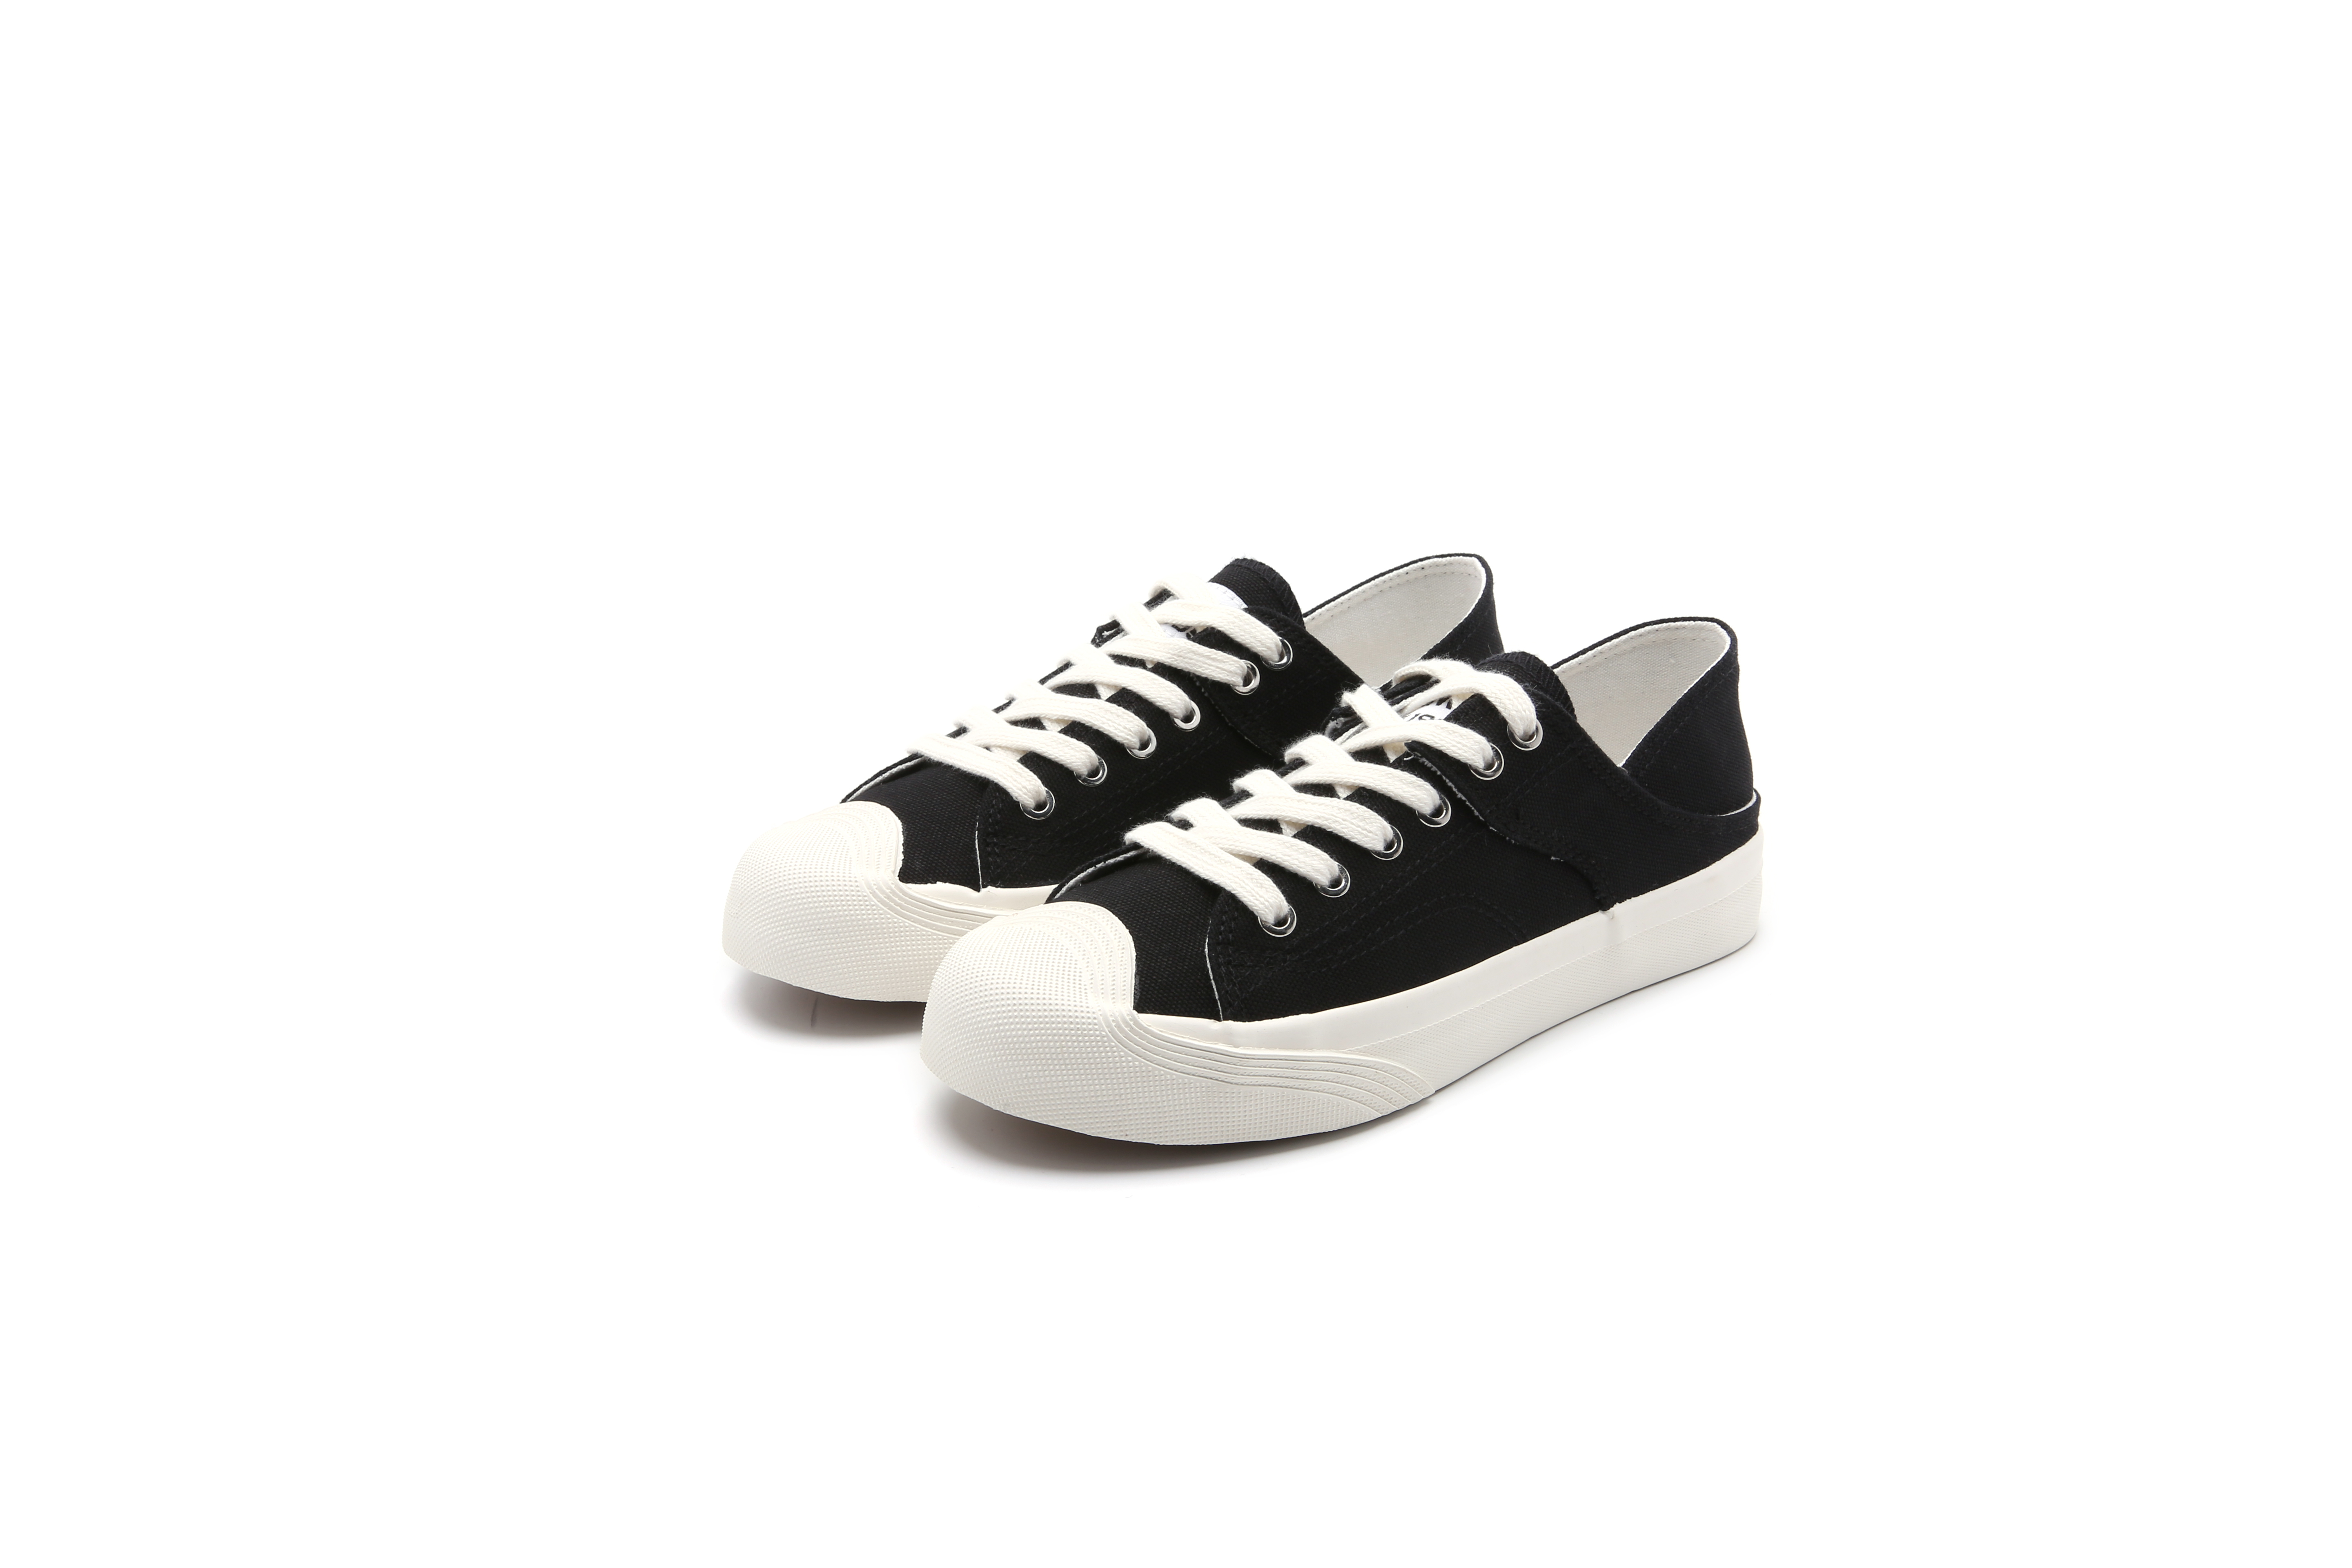 Special hot selling hight quality designers choice classic WOmens sport shoes